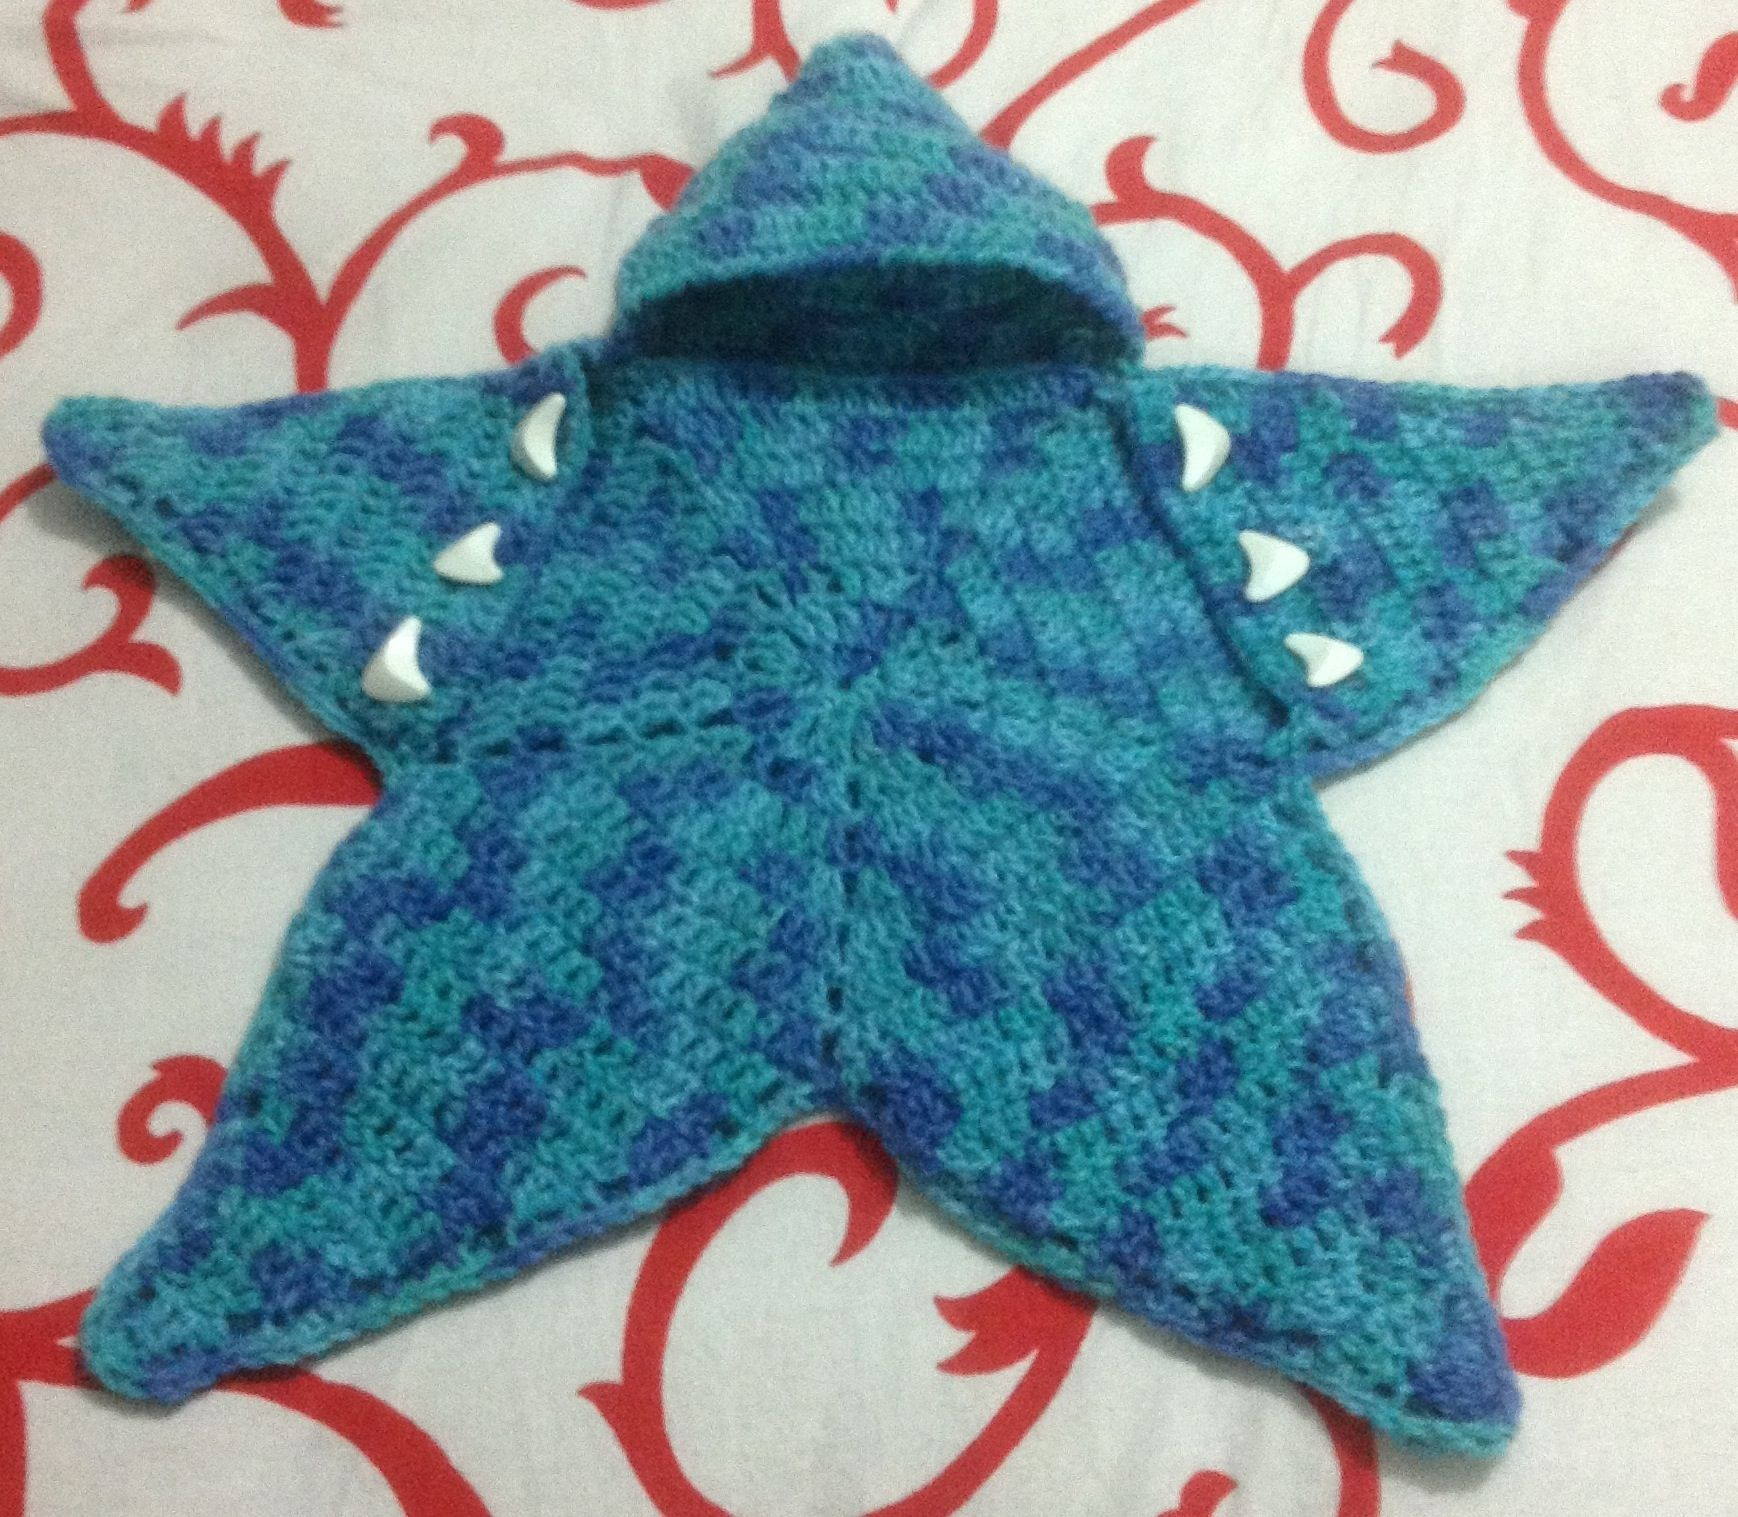 Star baby bunting | Baby bunting, Buntings and Crochet